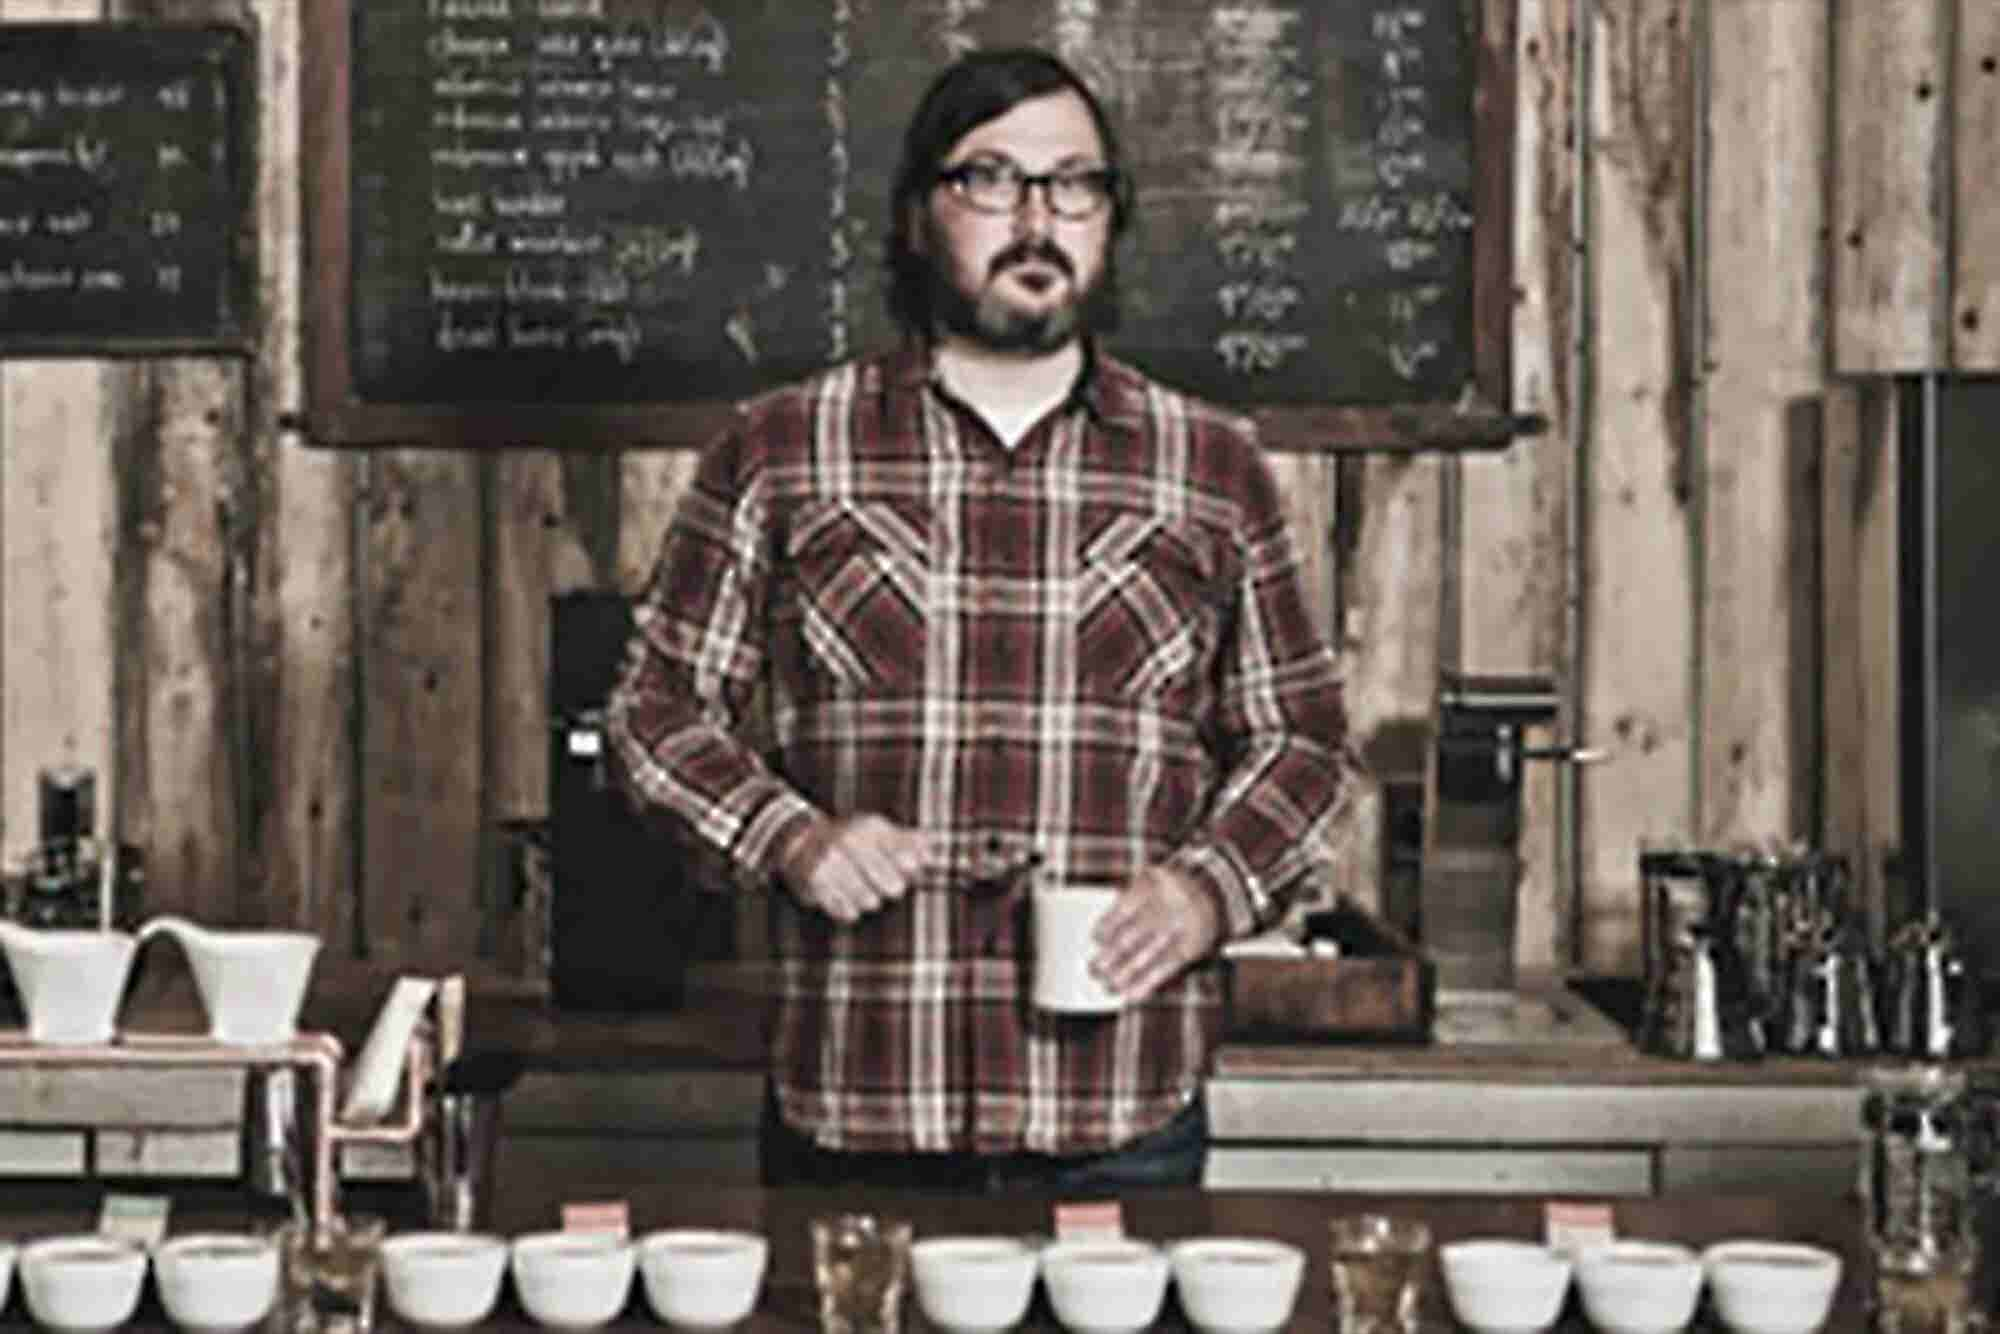 Stumptown's Duane Sorenson, the Coffee Connoisseur